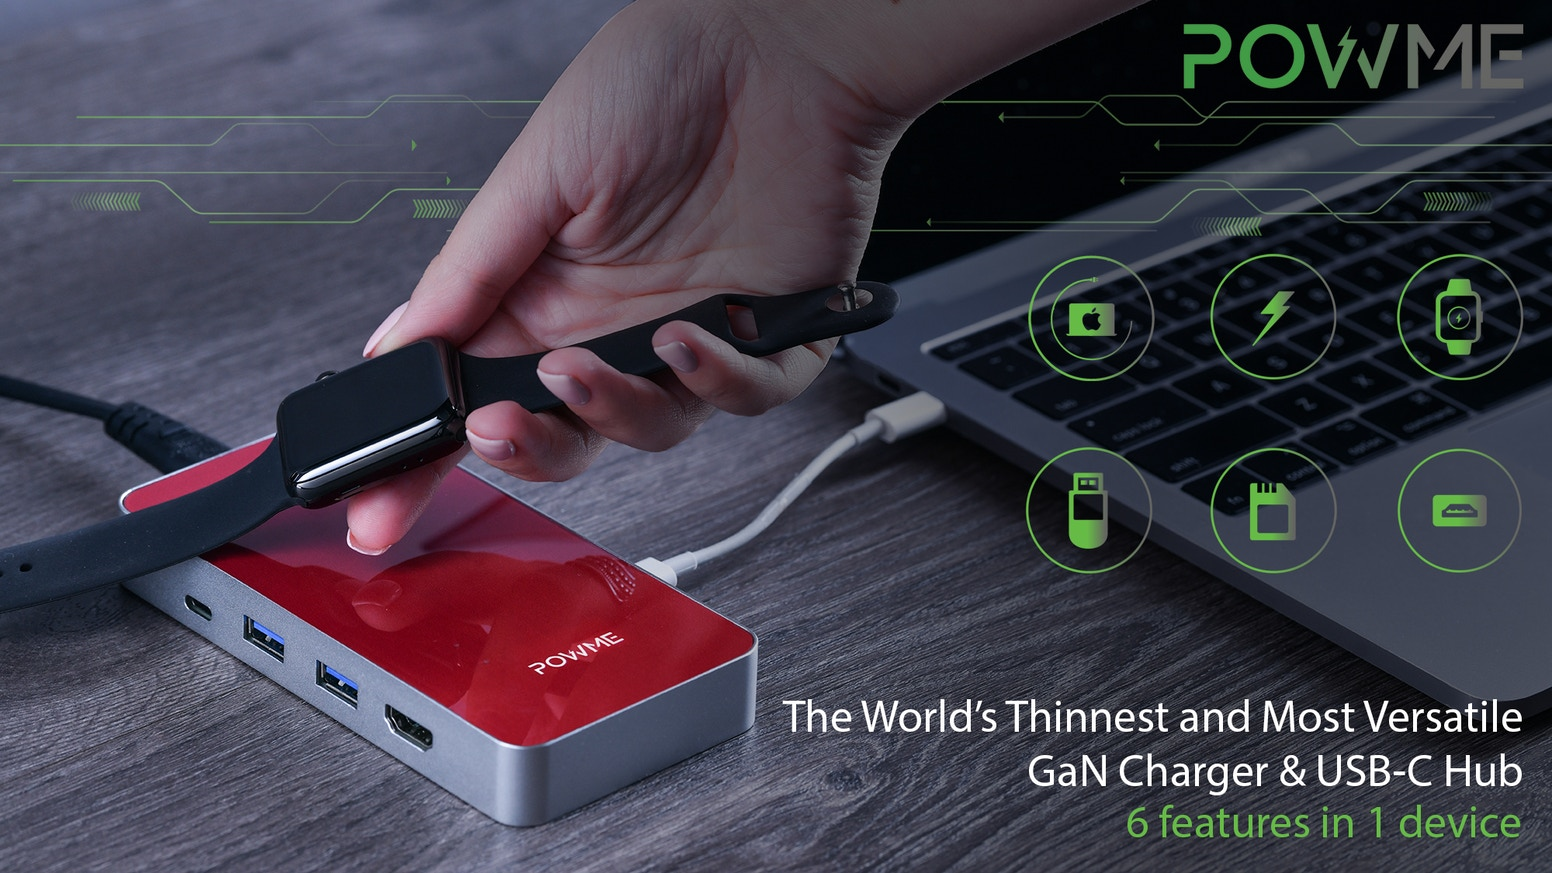 One stylish gadget to charge your Laptop, Smartphone, Smartwatch, Airpods with integrated USB-C Hub.